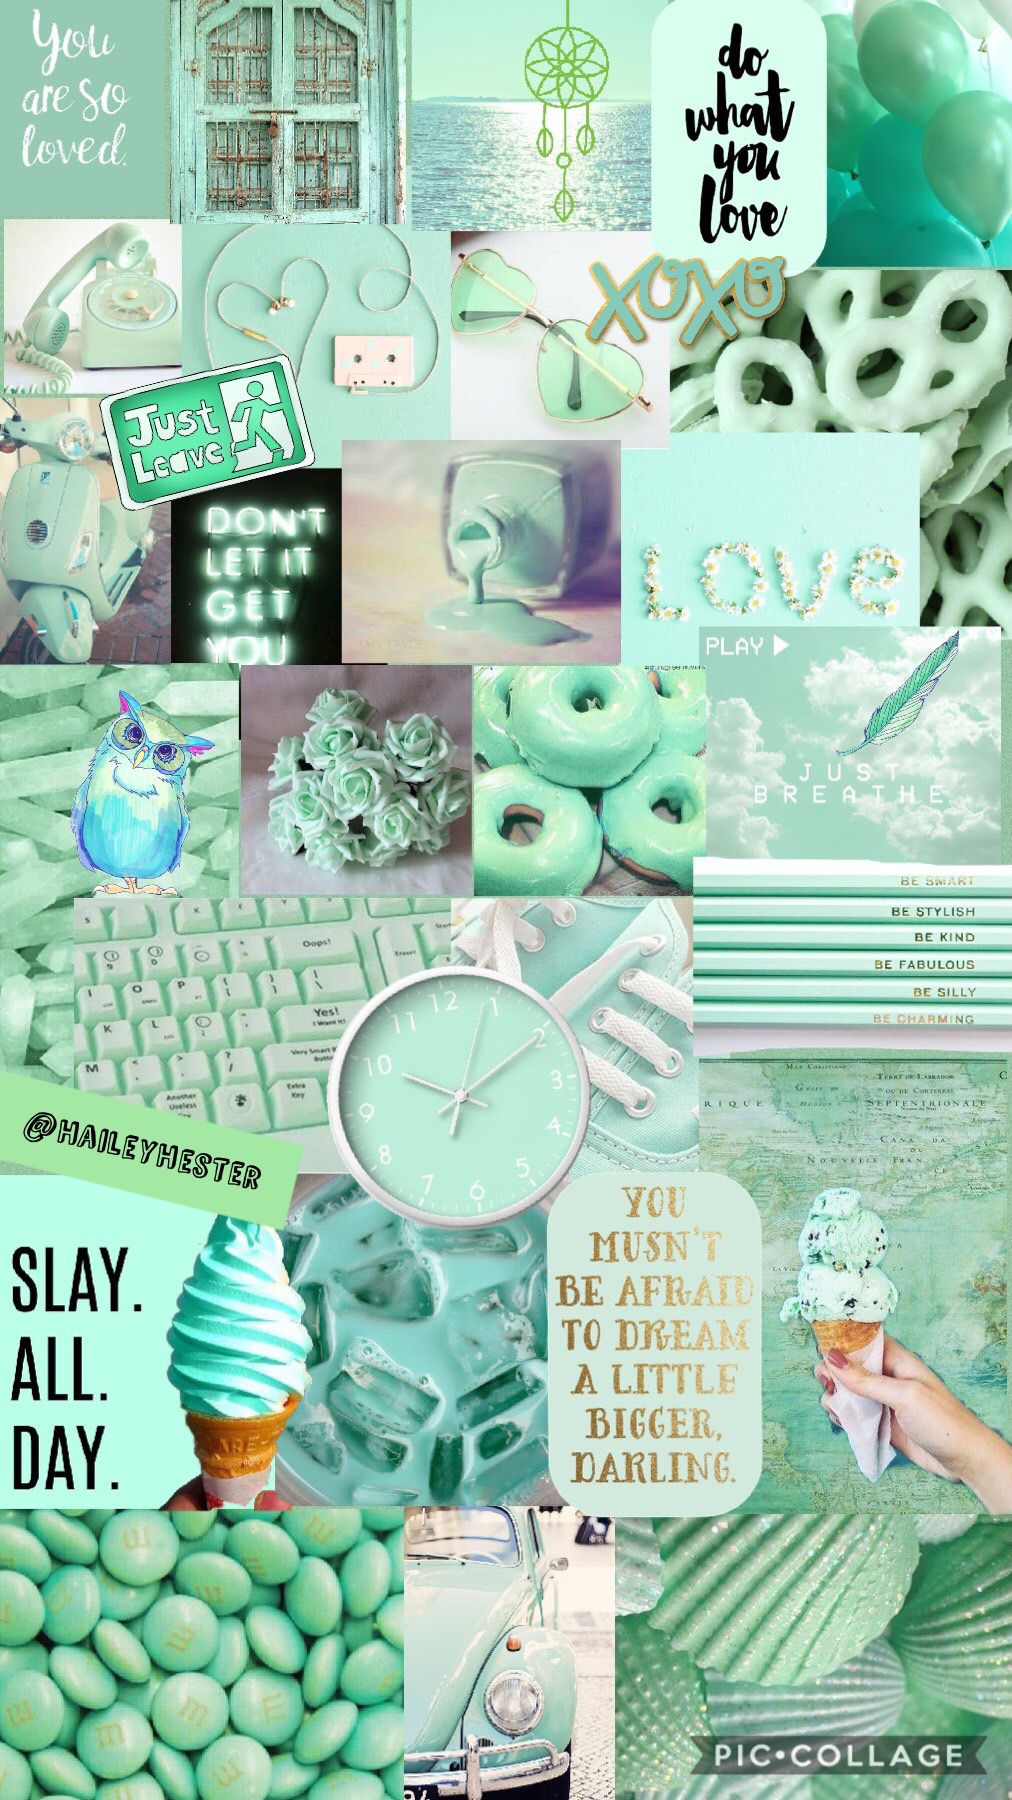 Mint Green Aesthetic Collage Iphone Wallpaper Tumblr Aesthetic Wallpaper Iphone Cute Aesthetic Iphone Wallpaper